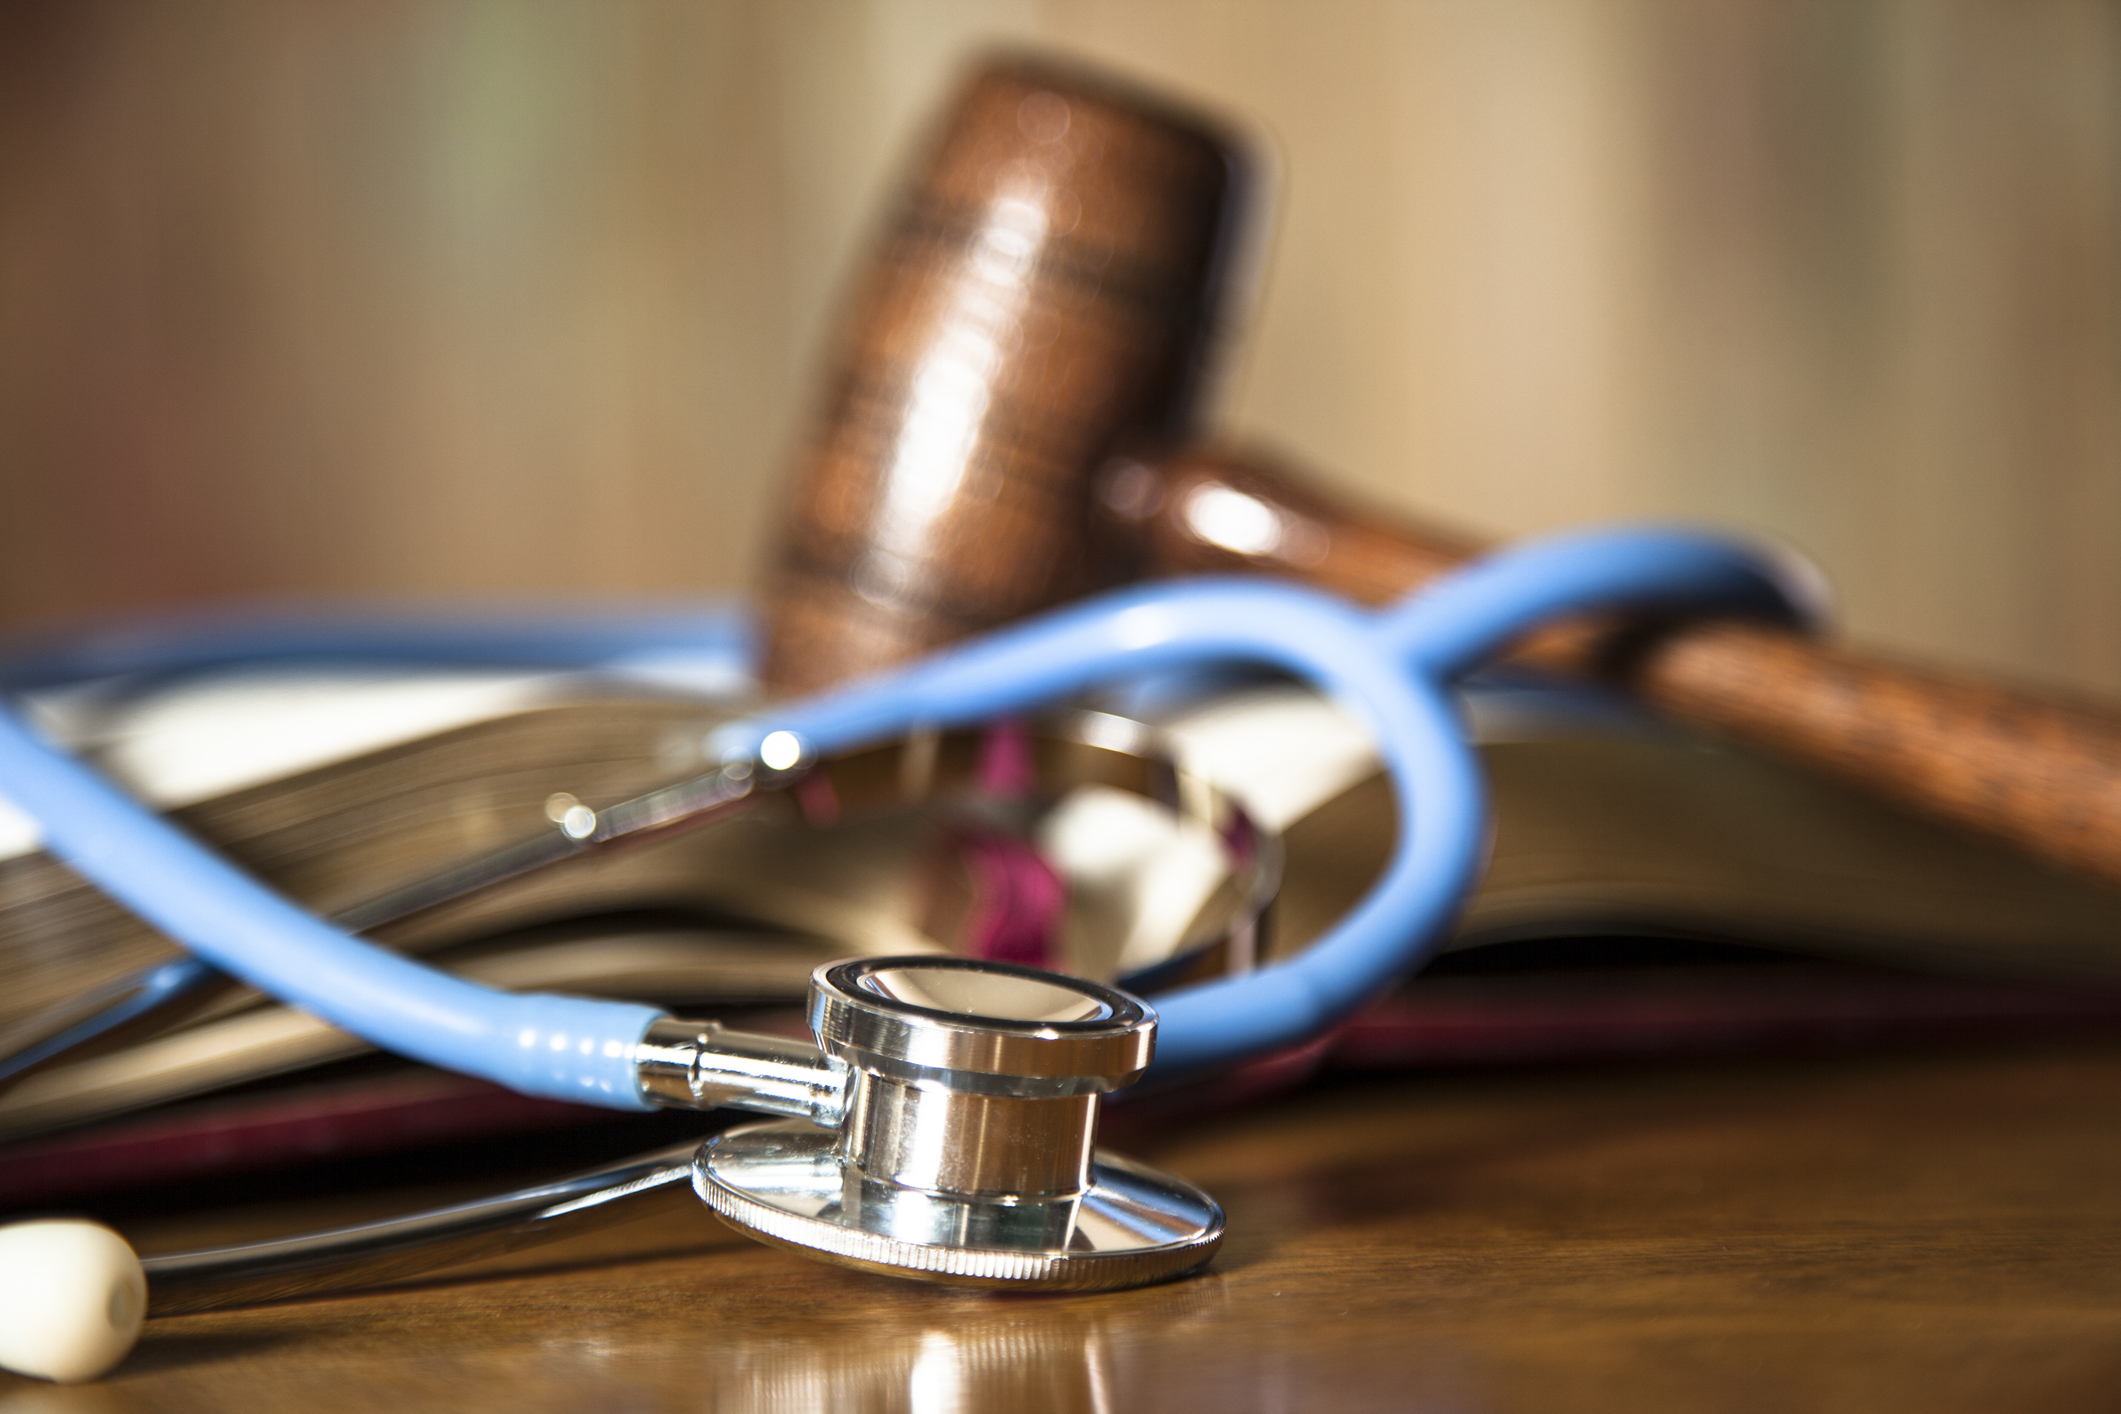 Judge's gravel and blue stethoscope on court room table